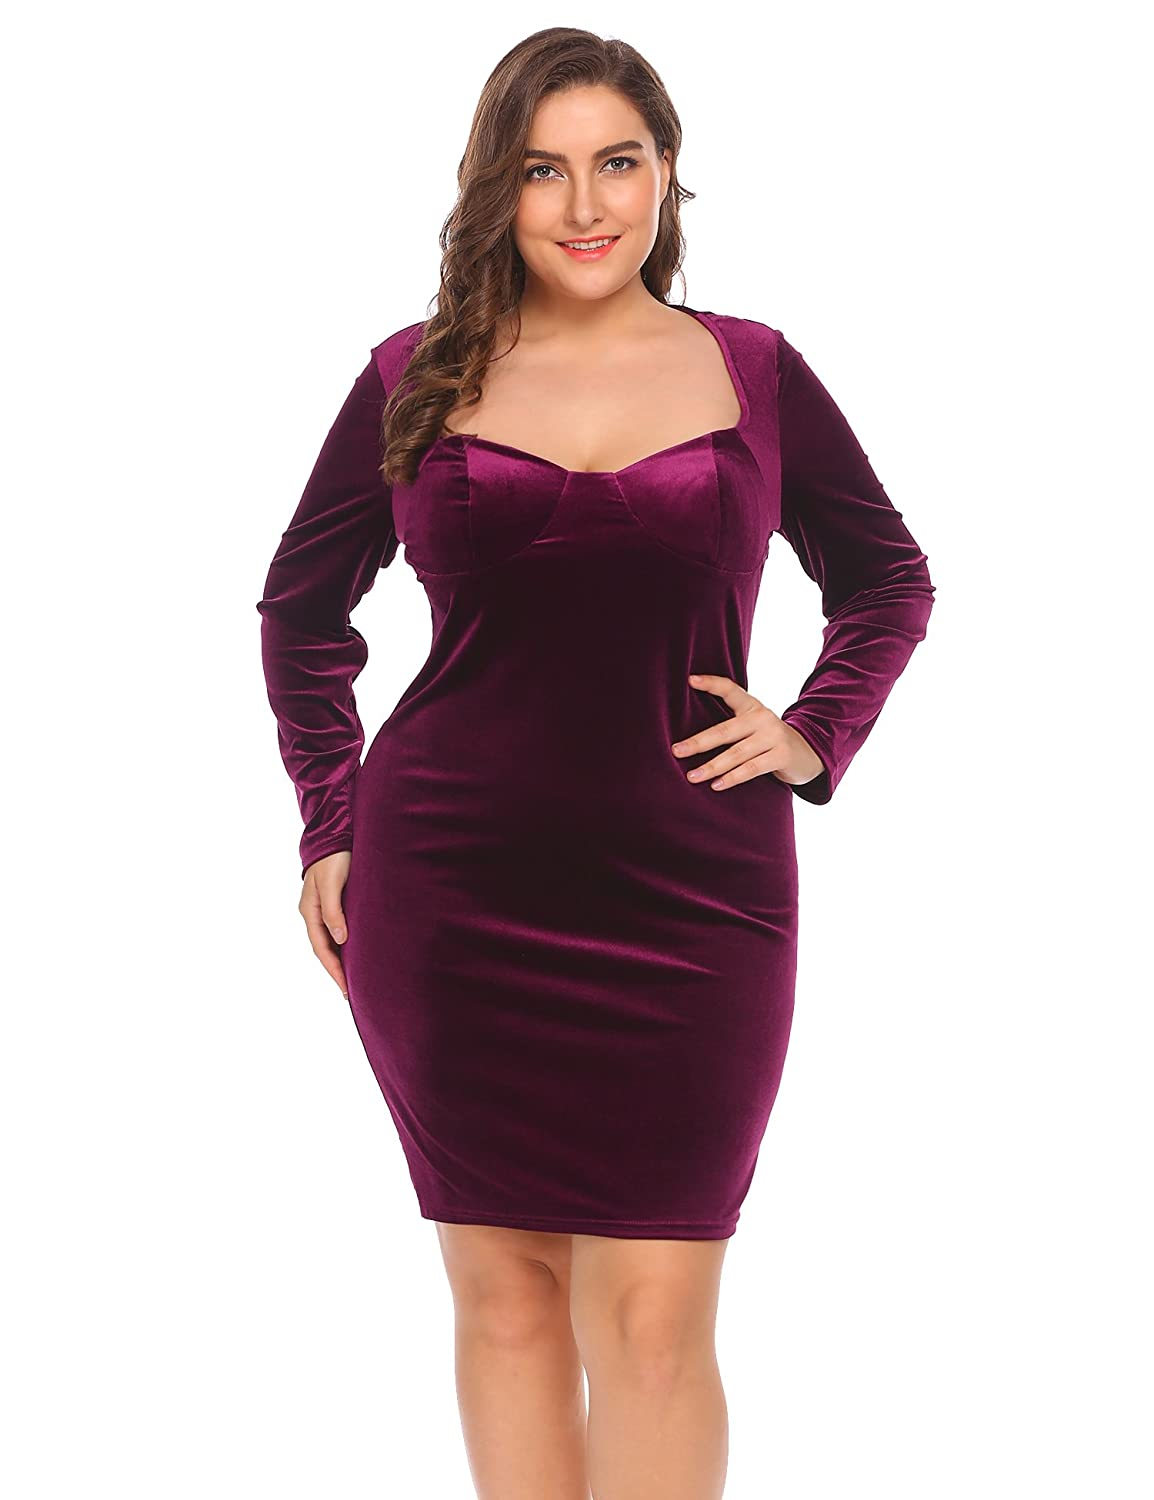 6da25483e790 Women's Plus Size Vintage 1950S Long Sleeve Velvet Bodycon Dresses Elegant  Party Cocktail Dress at Amazon Women's Clothing store: